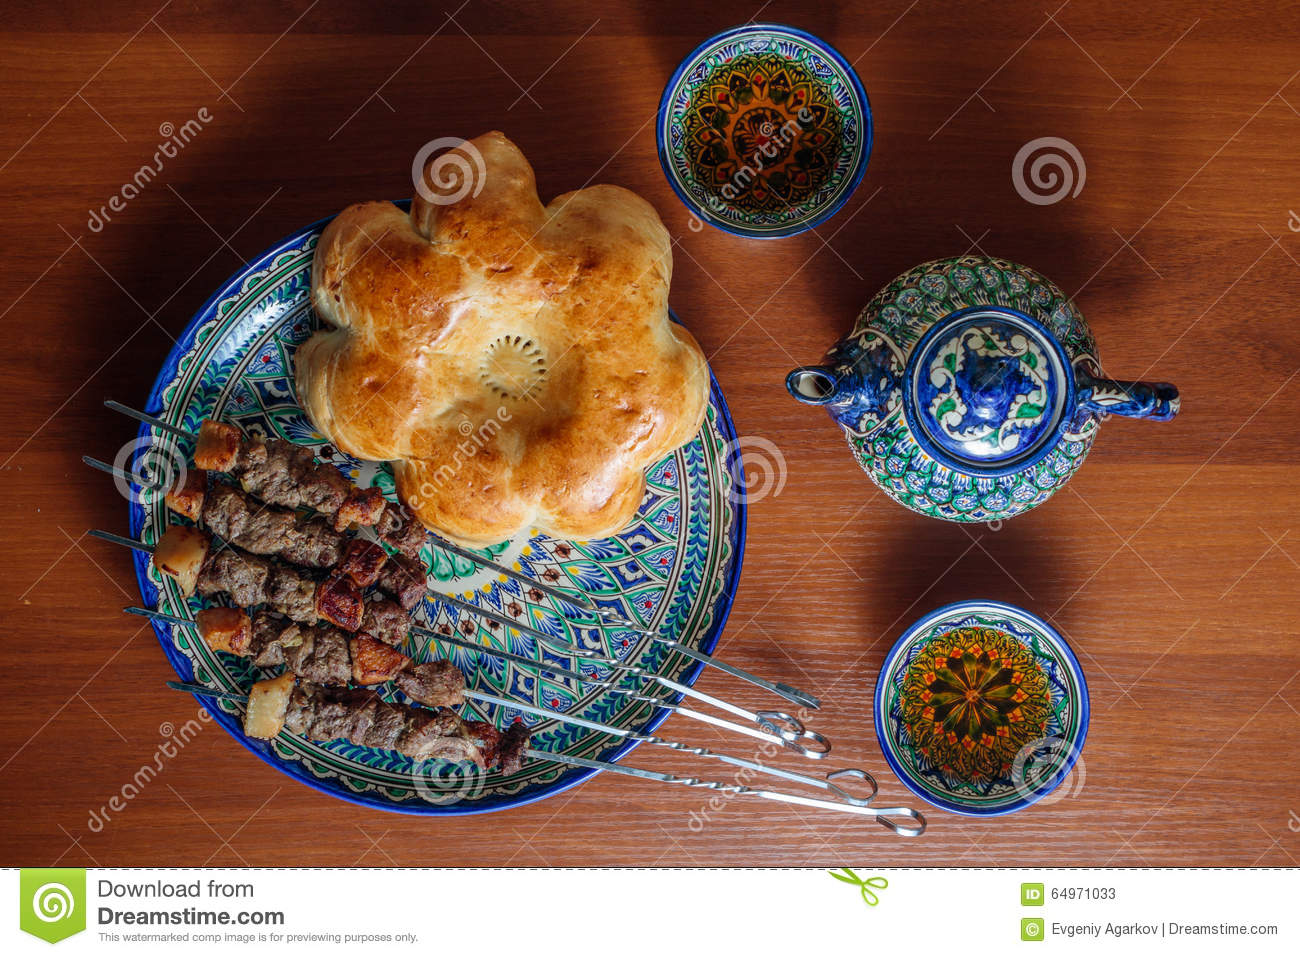 Kebabs and asian bread on a ceramic dish